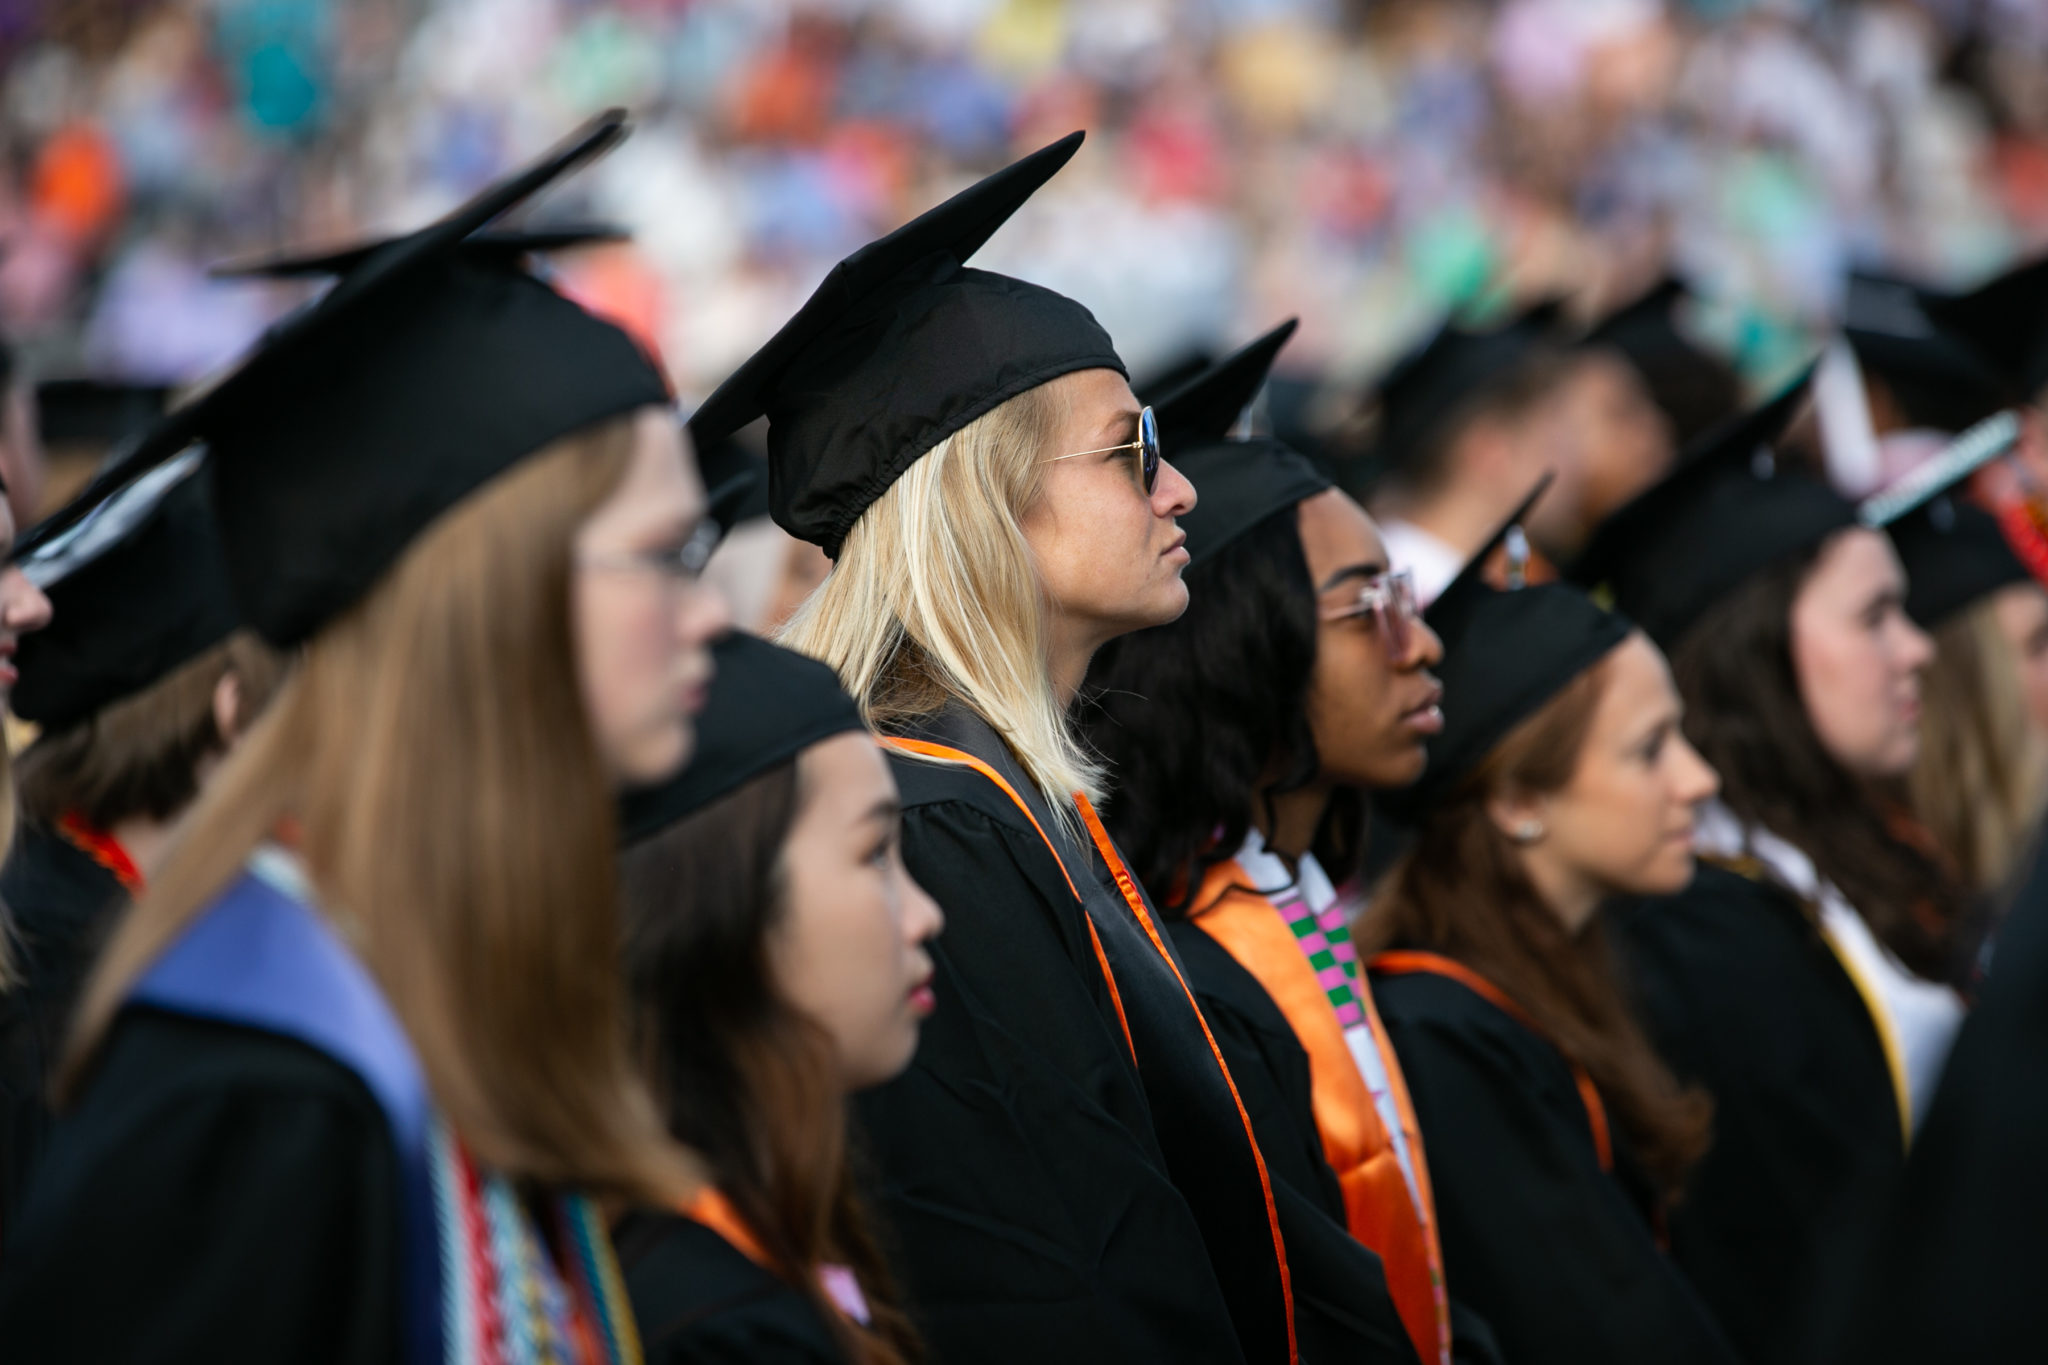 Students wearing caps and gowns at commencement